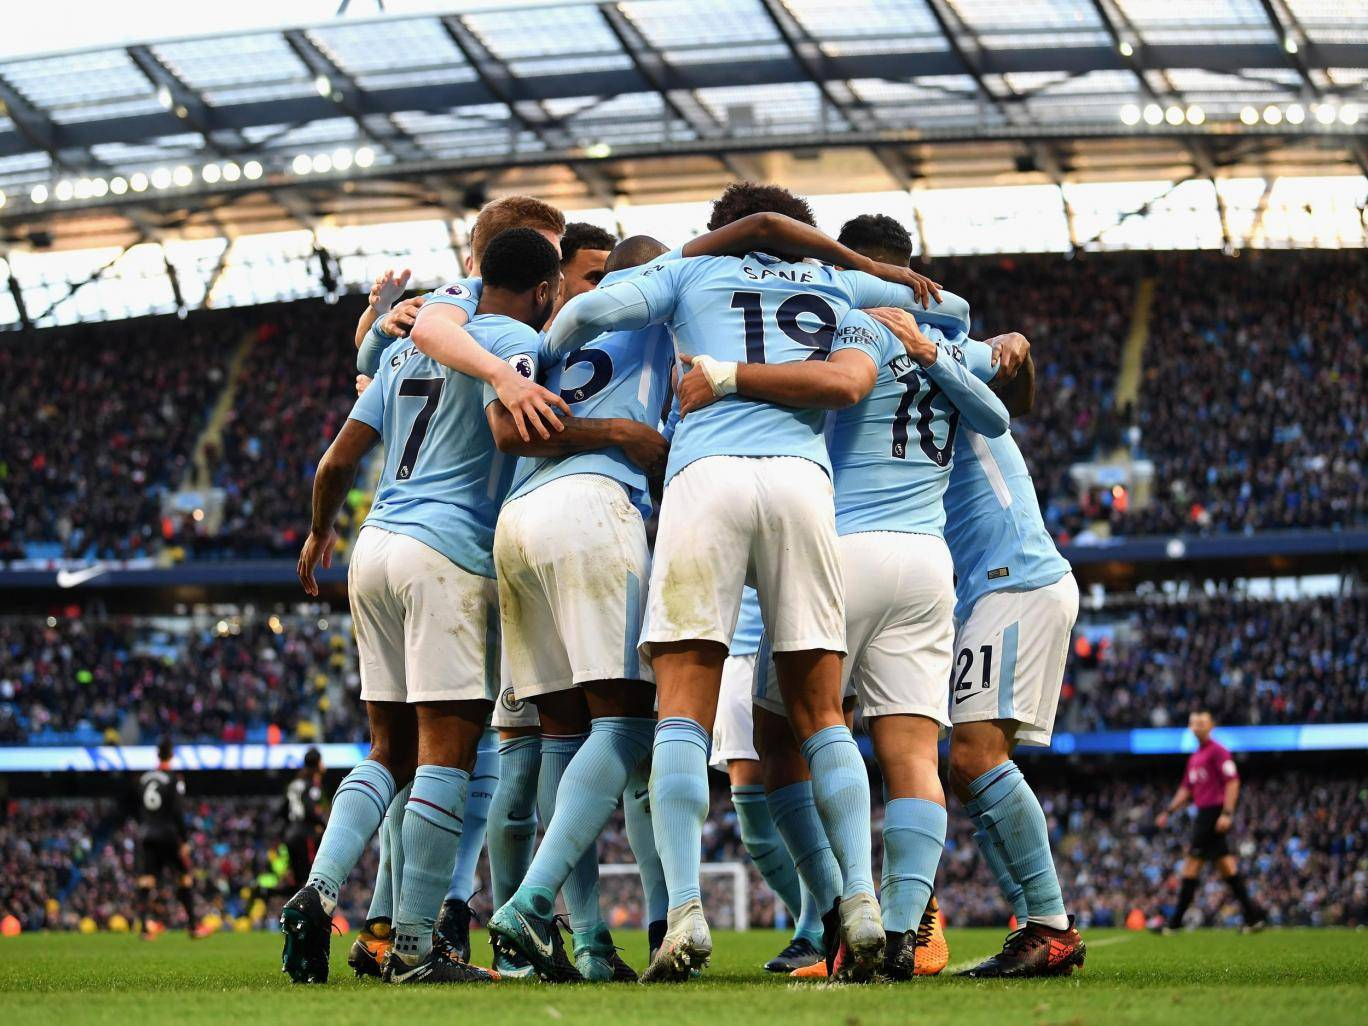 After 40 Goals In Just 12 Matches How Do You Stop Manchester City